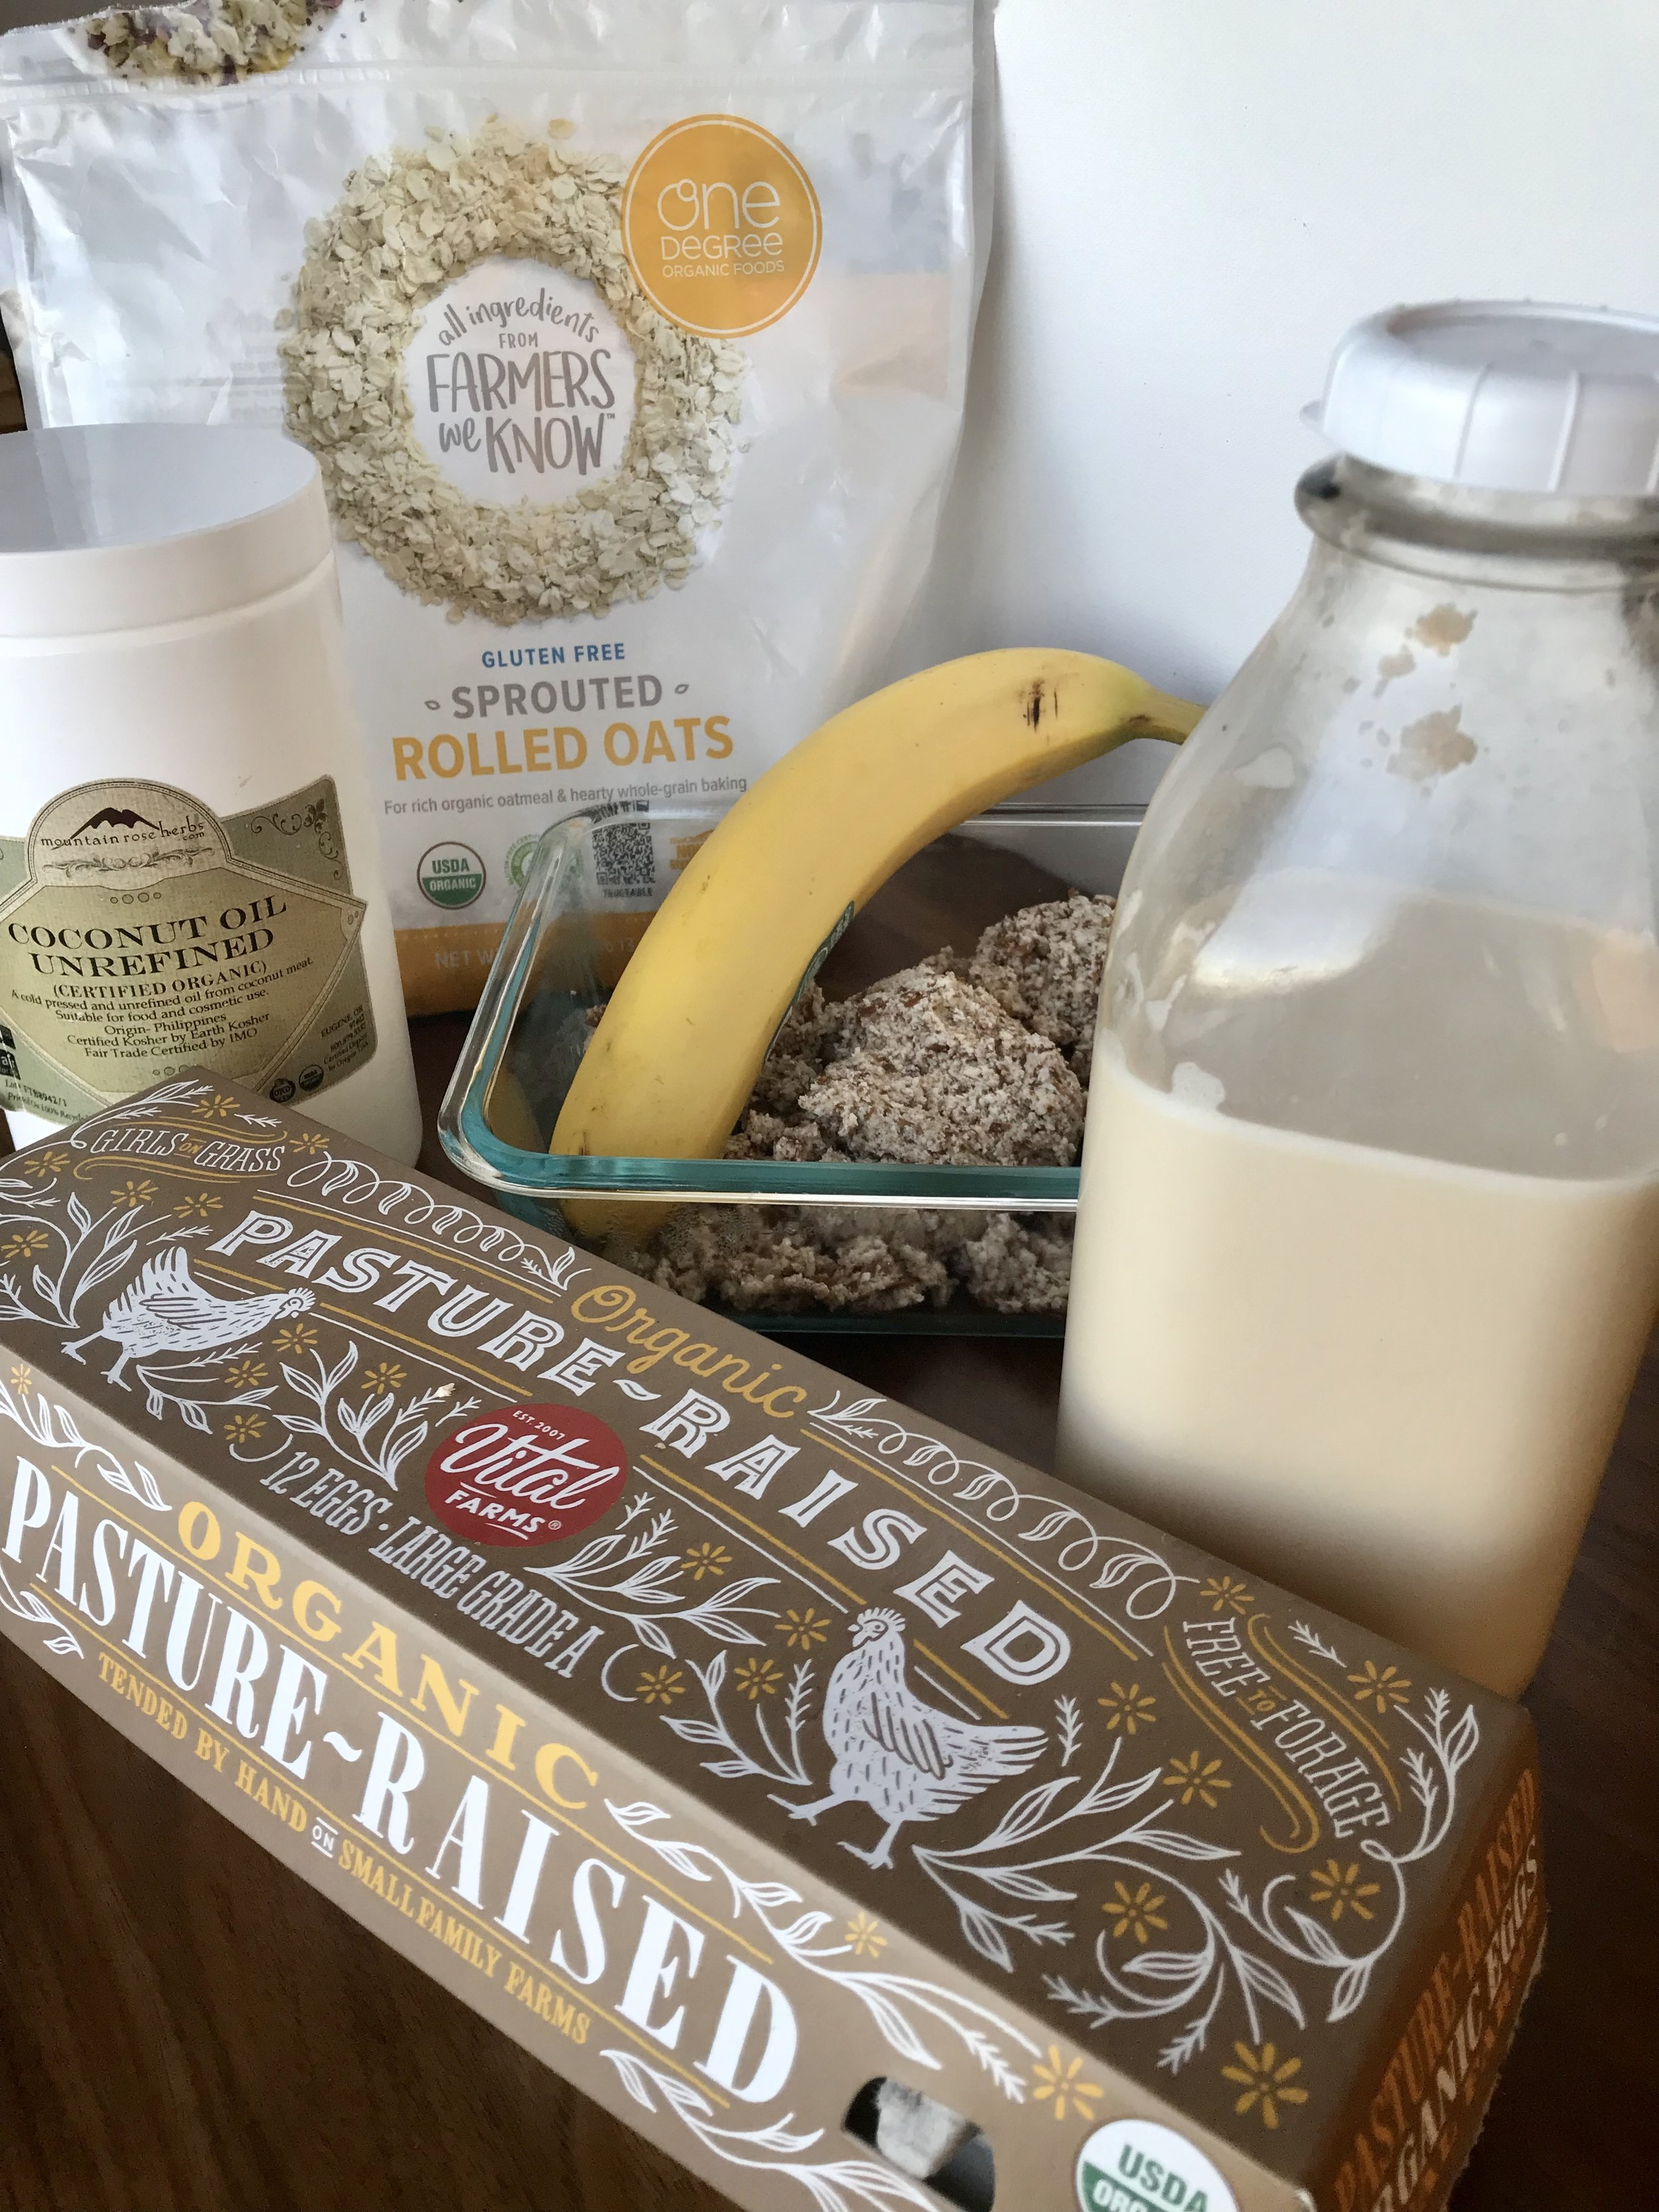 Ingredients - 1 cup of gluten-free sprouted rolled oats1/2 cup of almond milk1 egg1 mashed banana1/4 cup of almond meal1 tbsp Coconut oilOptional: Cinnamon, Nutmeg, Vanilla Extract or other spice